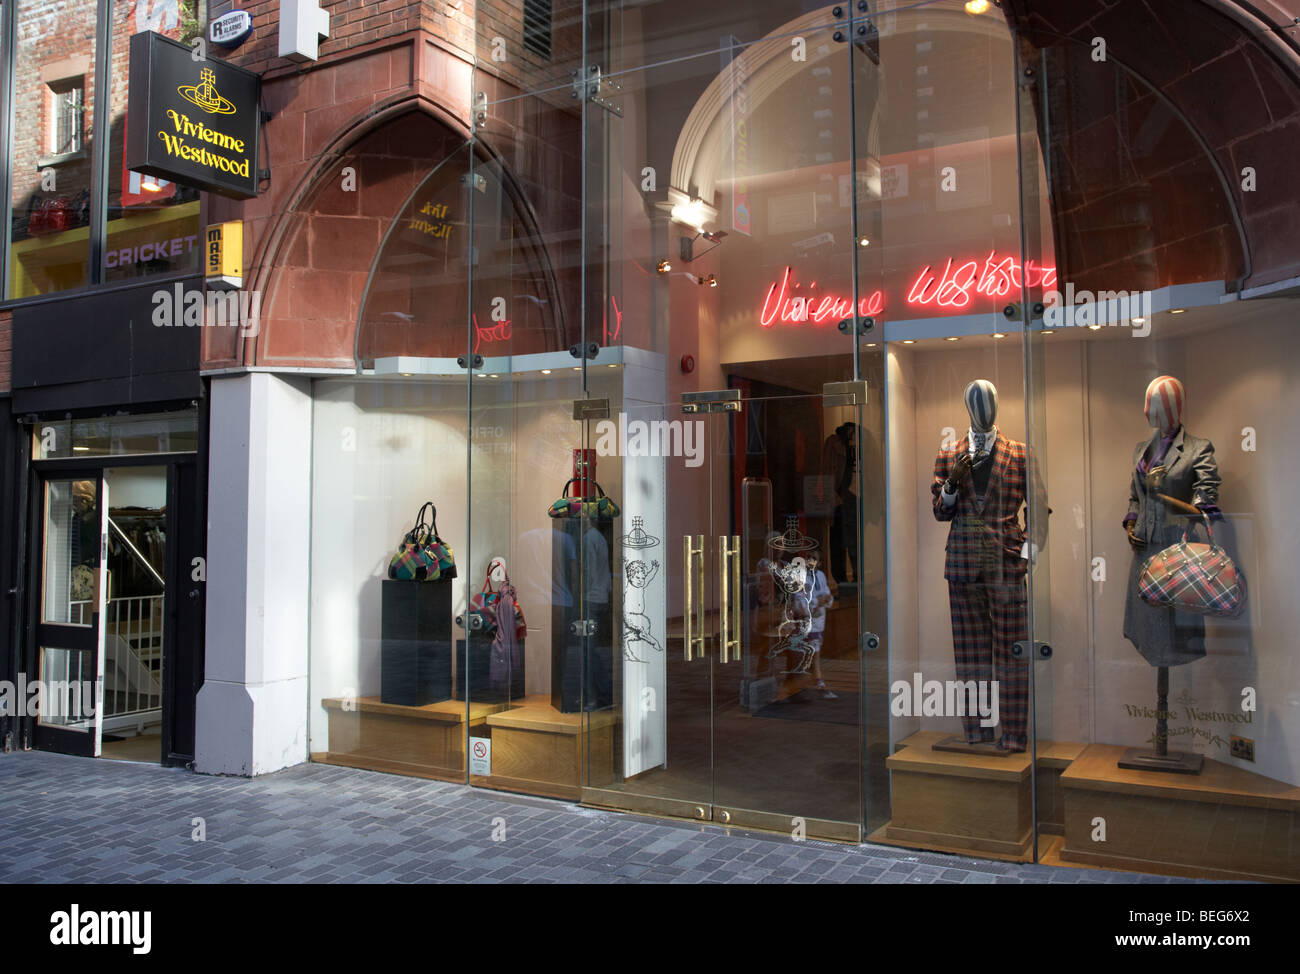 the vivienne westwood designer clothing store in mathew street in liverpool city centre - Stock Image